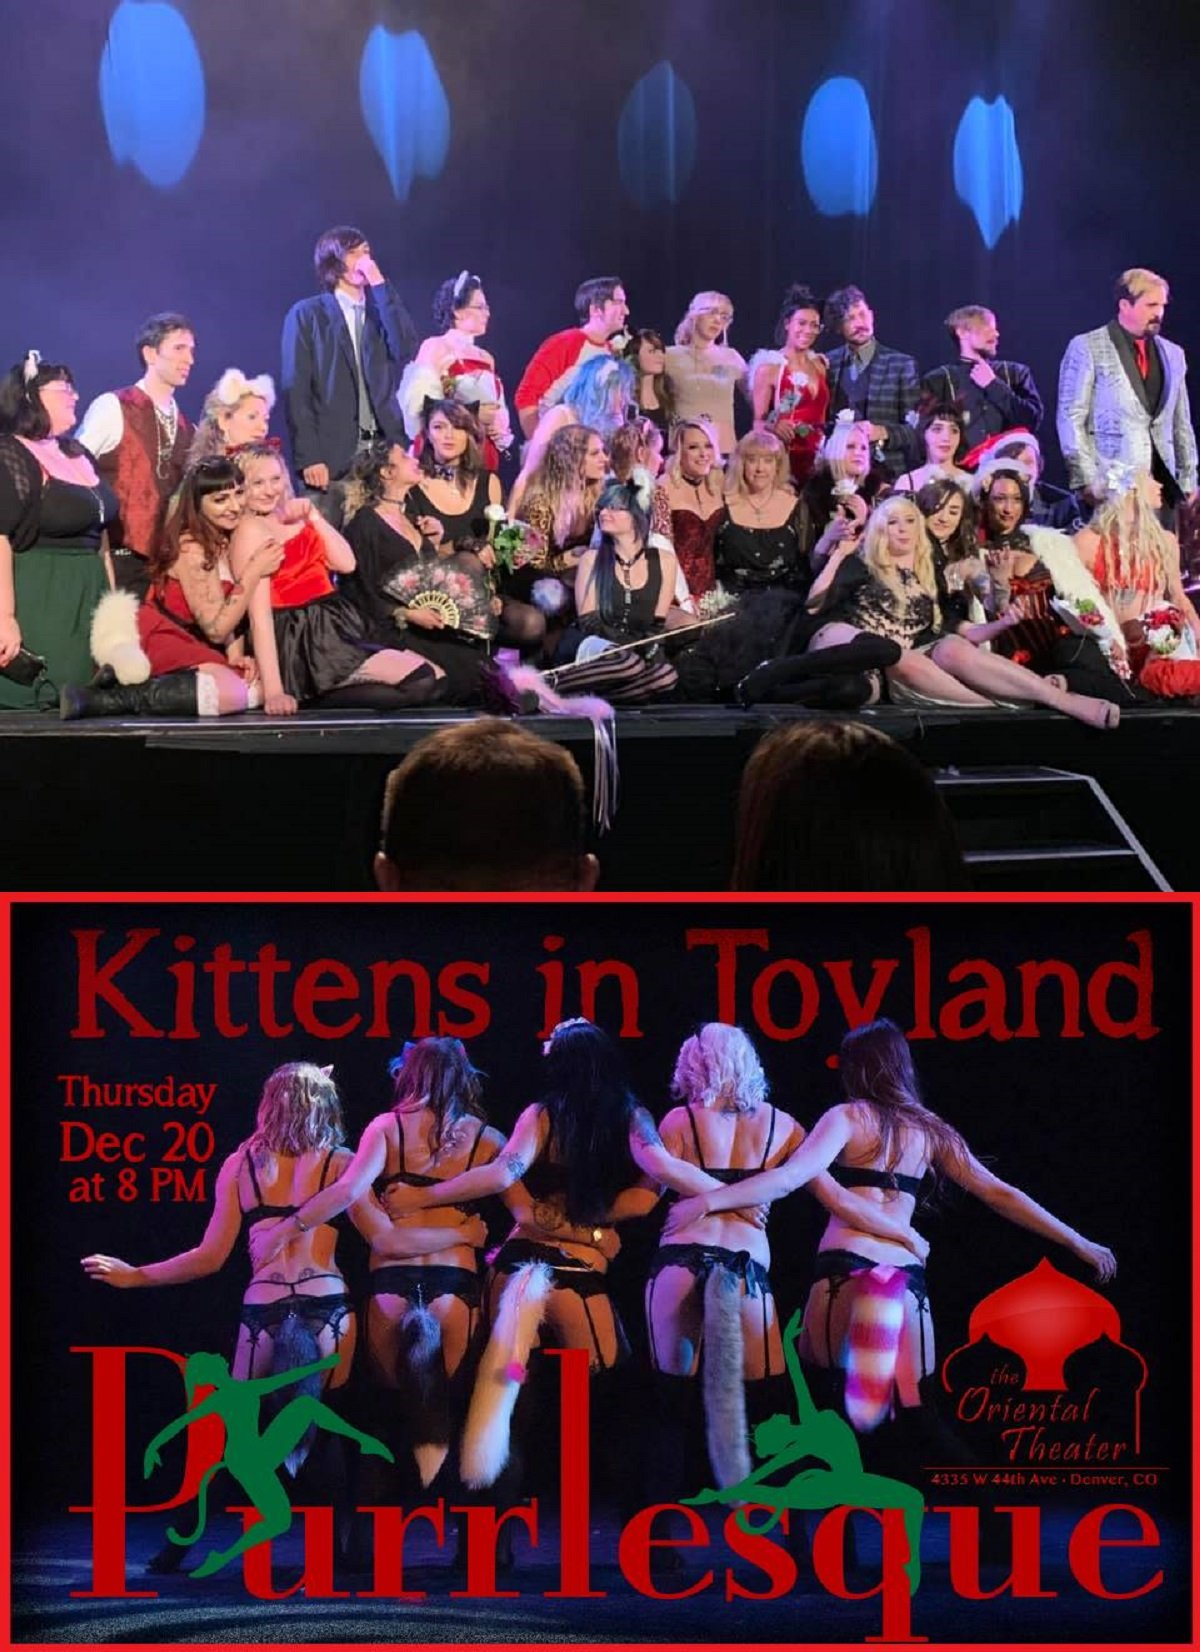 Kittens in Toyland! Purrlesque Show 2018 post thumbnail